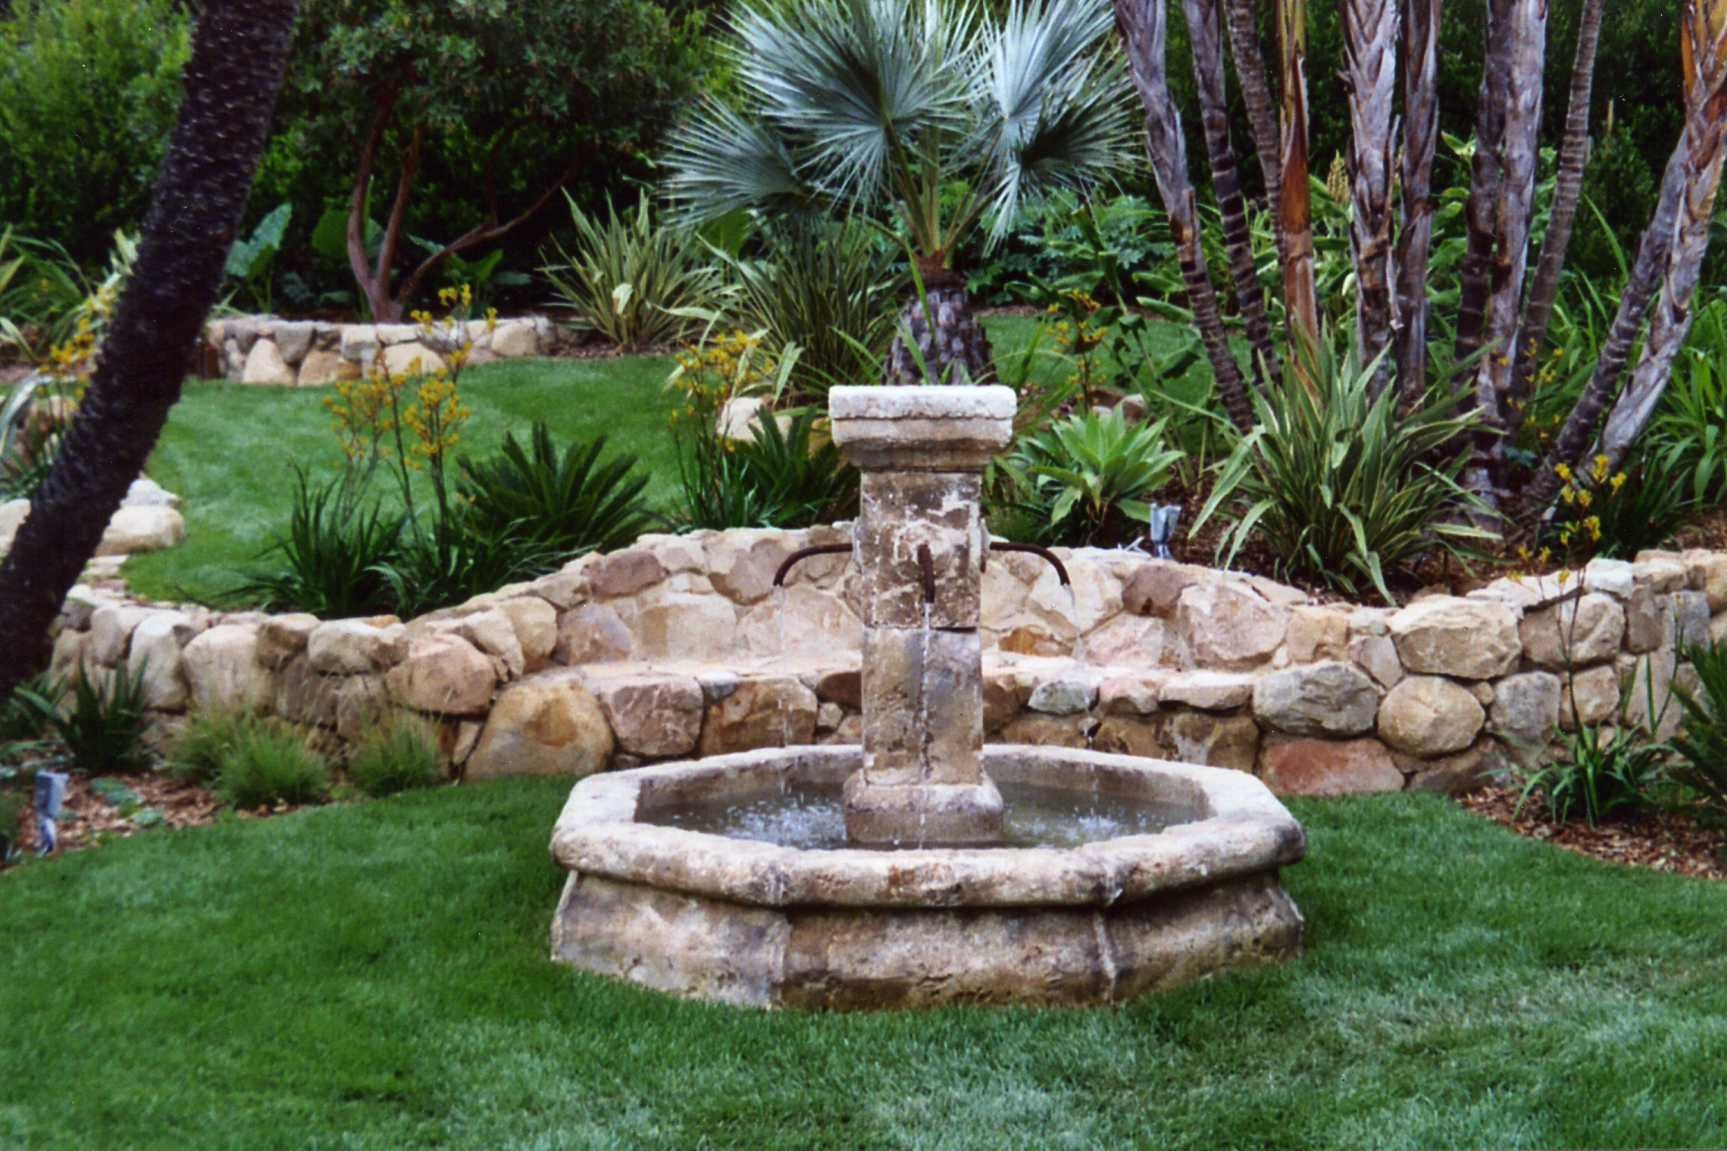 Santa barbara fountains garcia rock and water design blog for Outdoor landscaping ideas